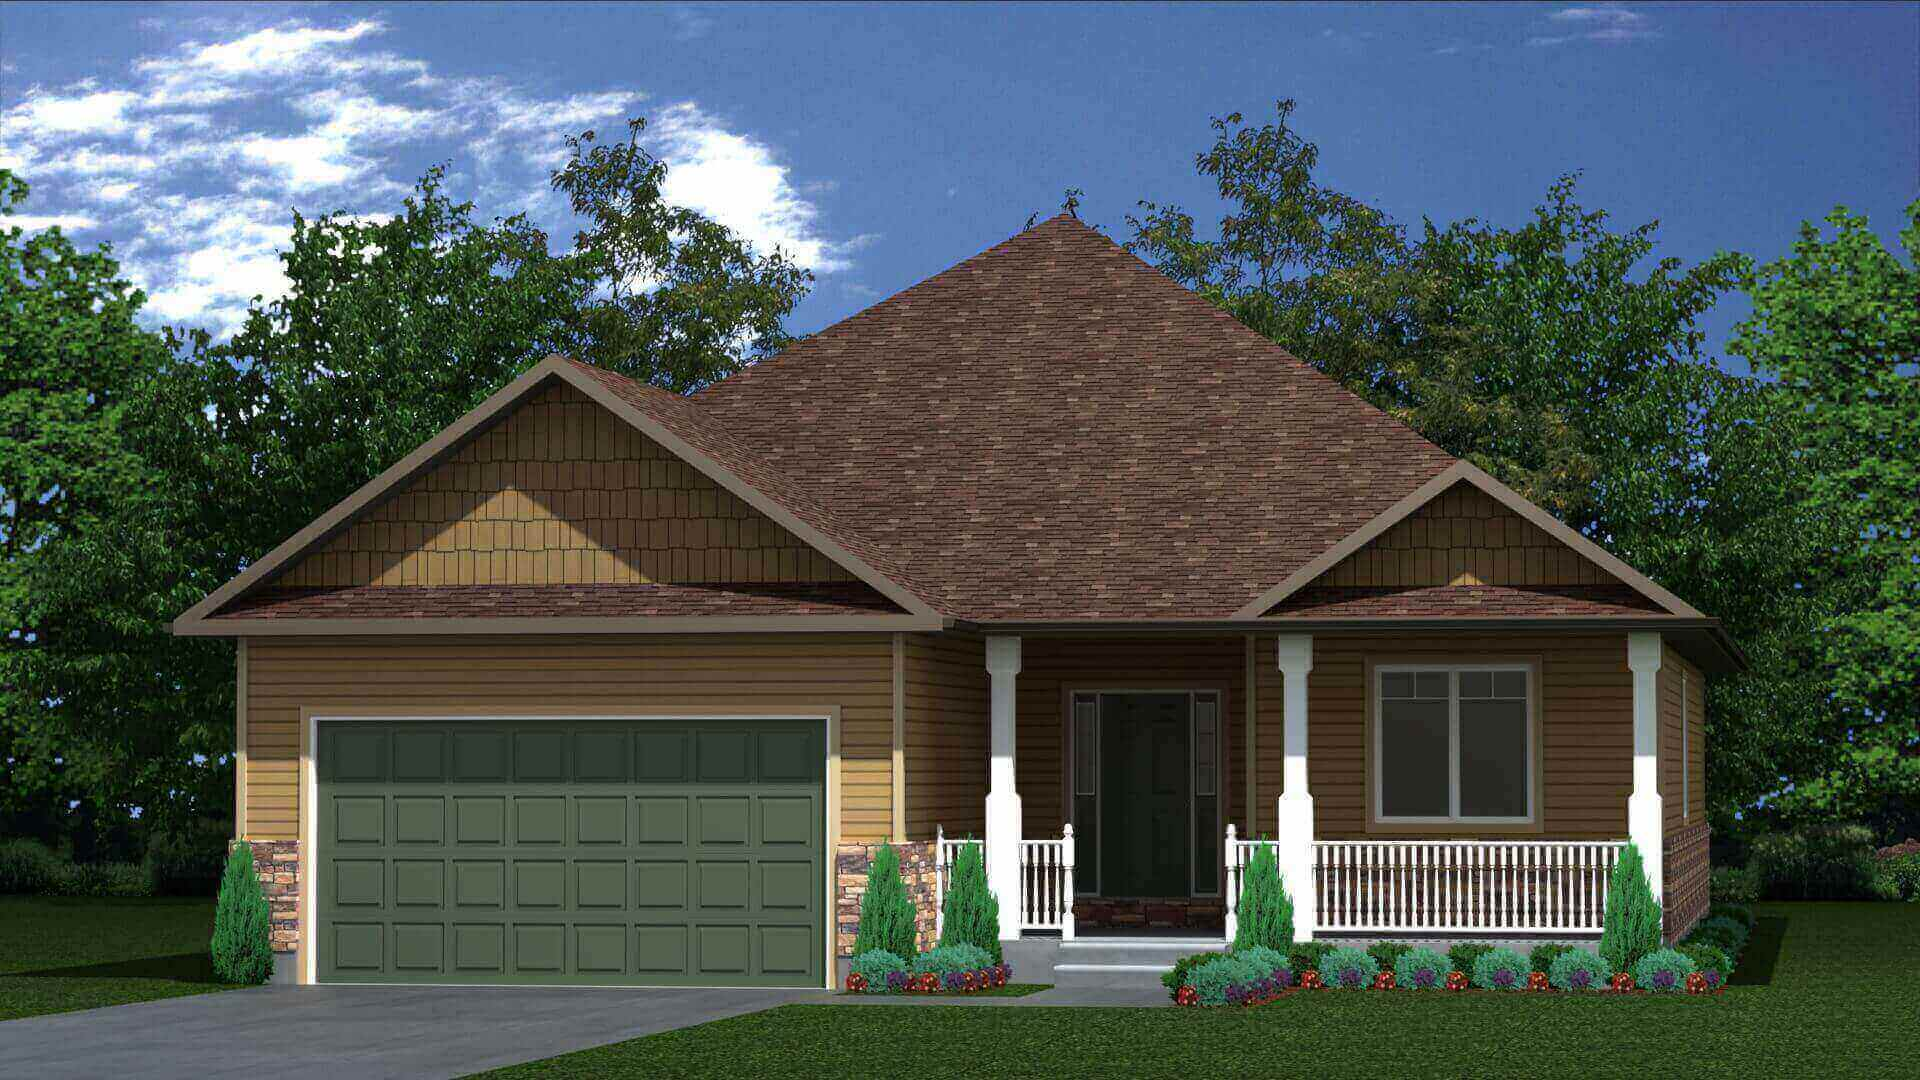 2002 sq.ft. timber mart house 3 bed 3 bath exterior render